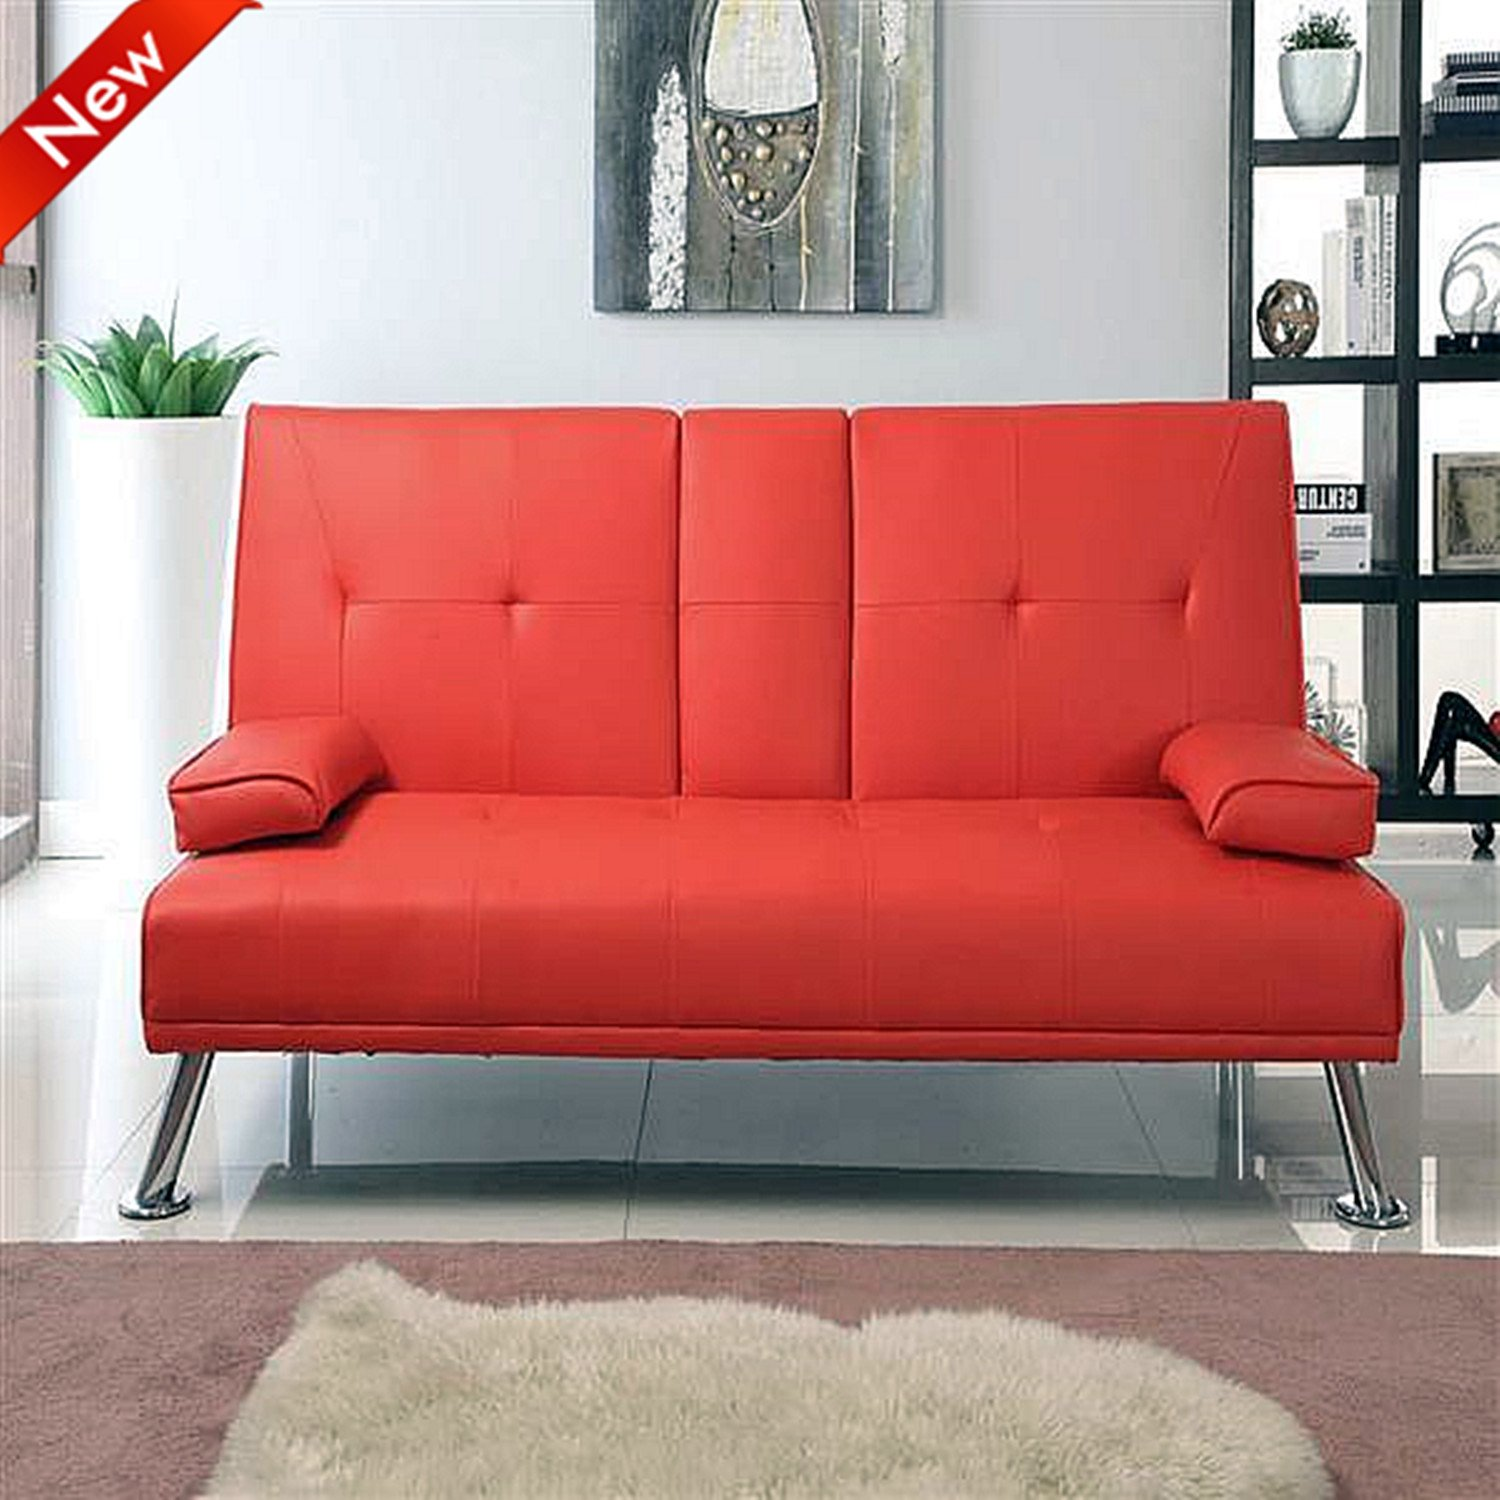 Modern leather sofa bed - Popamazing Modern Faux Leather 3 Seater Sofa Bed With Fold Down Table Cup Holder Sofa Beds Red Amazon Co Uk Kitchen Home